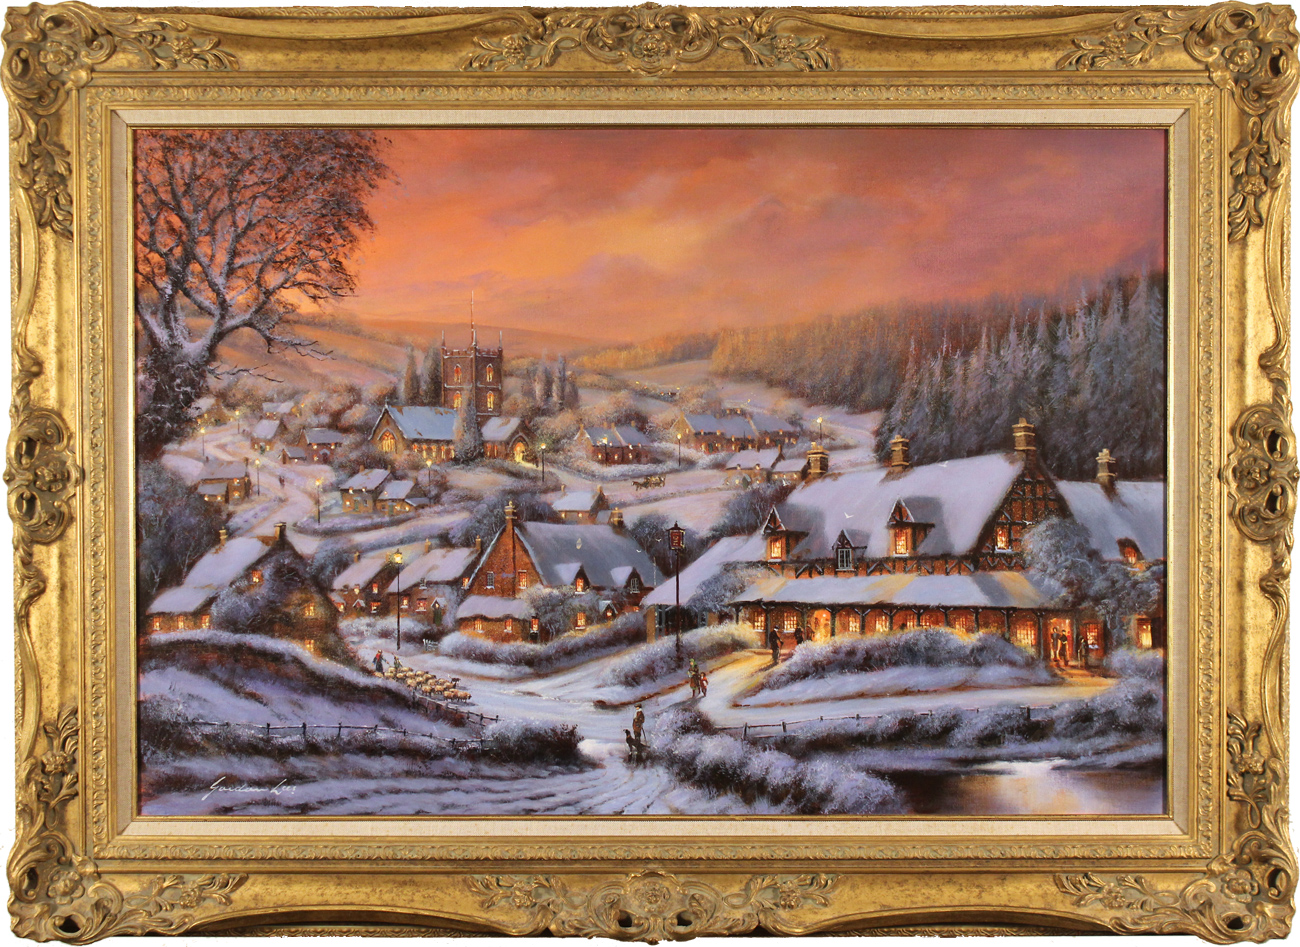 Gordon Lees, Original oil painting on canvas, Snowy Hamlet, The Cotswolds, click to enlarge